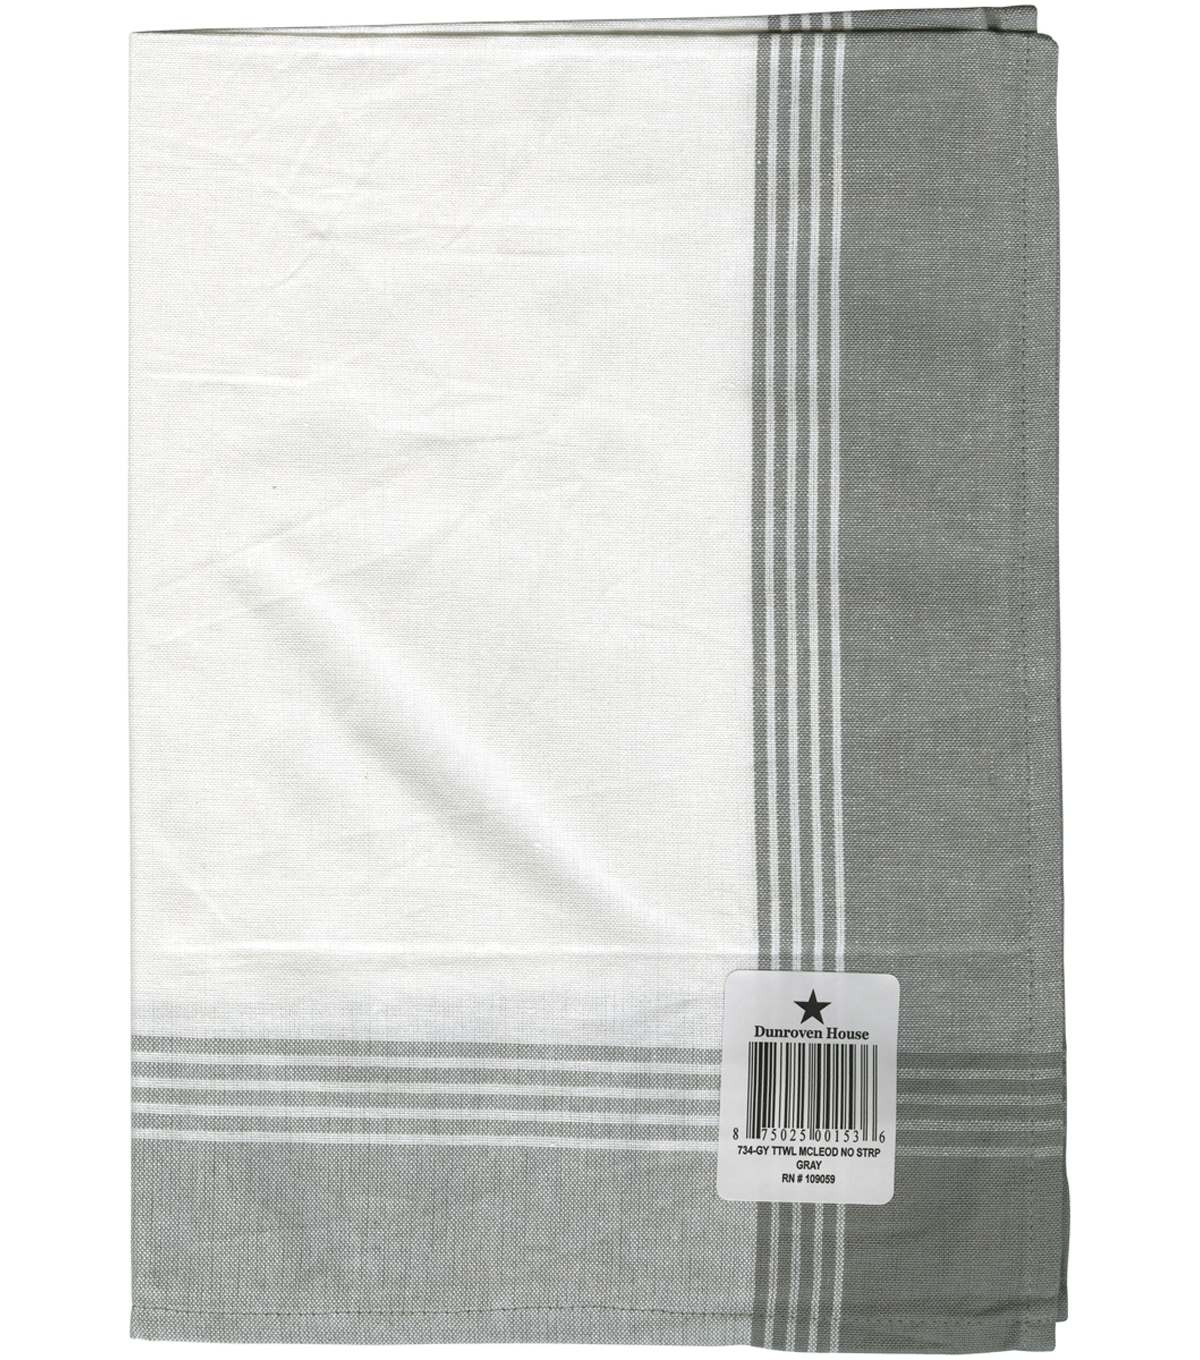 Dunroven House Striped Mcleod Towel